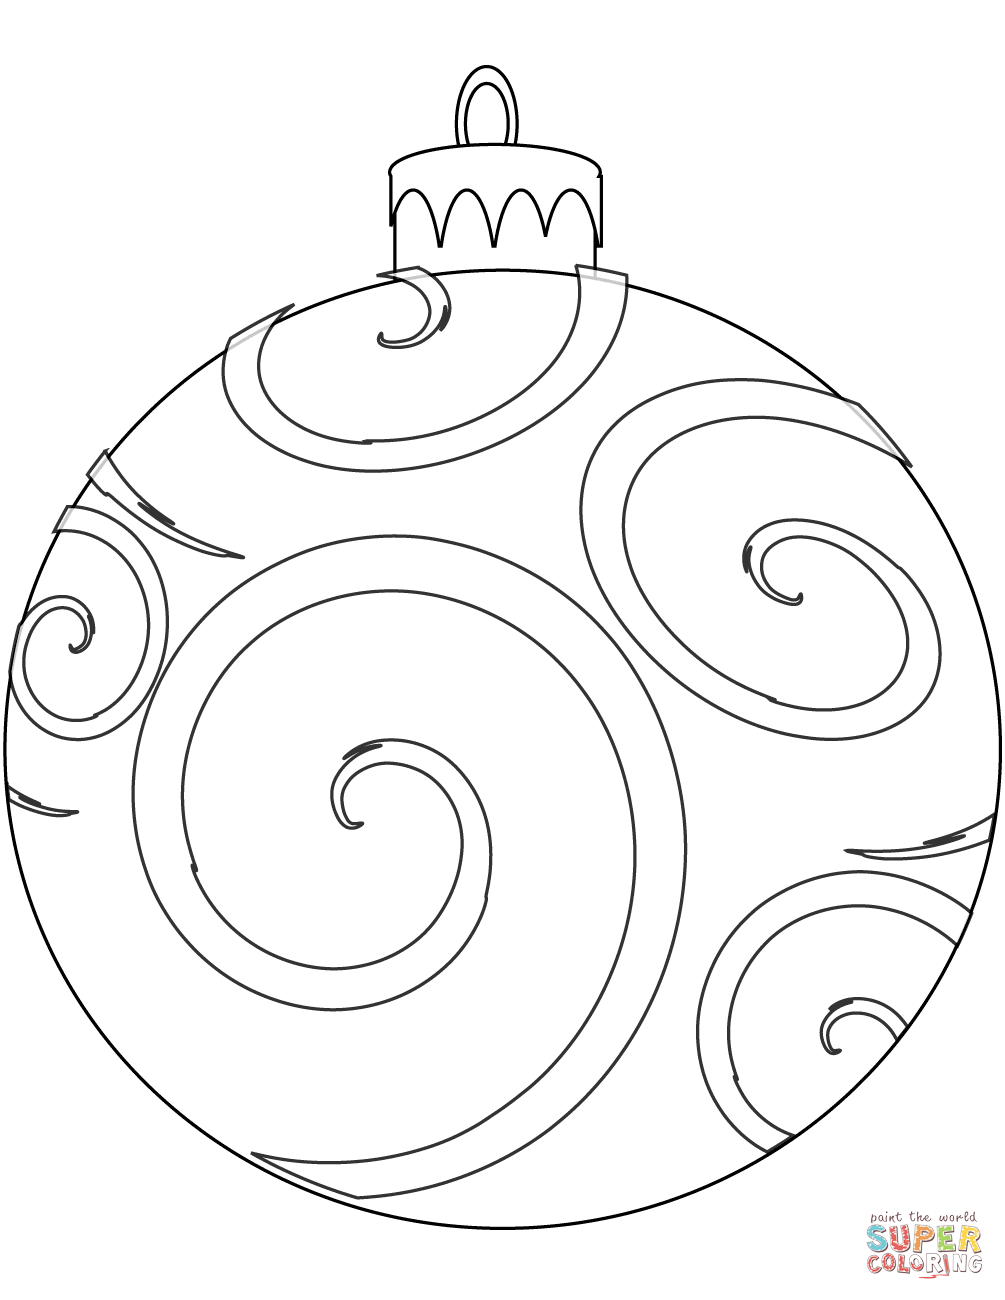 Holiday Ornament Coloring Page From Christmas Decoration Cate Printable Christmas Coloring Pages Christmas Ornament Coloring Page Printable Christmas Ornaments